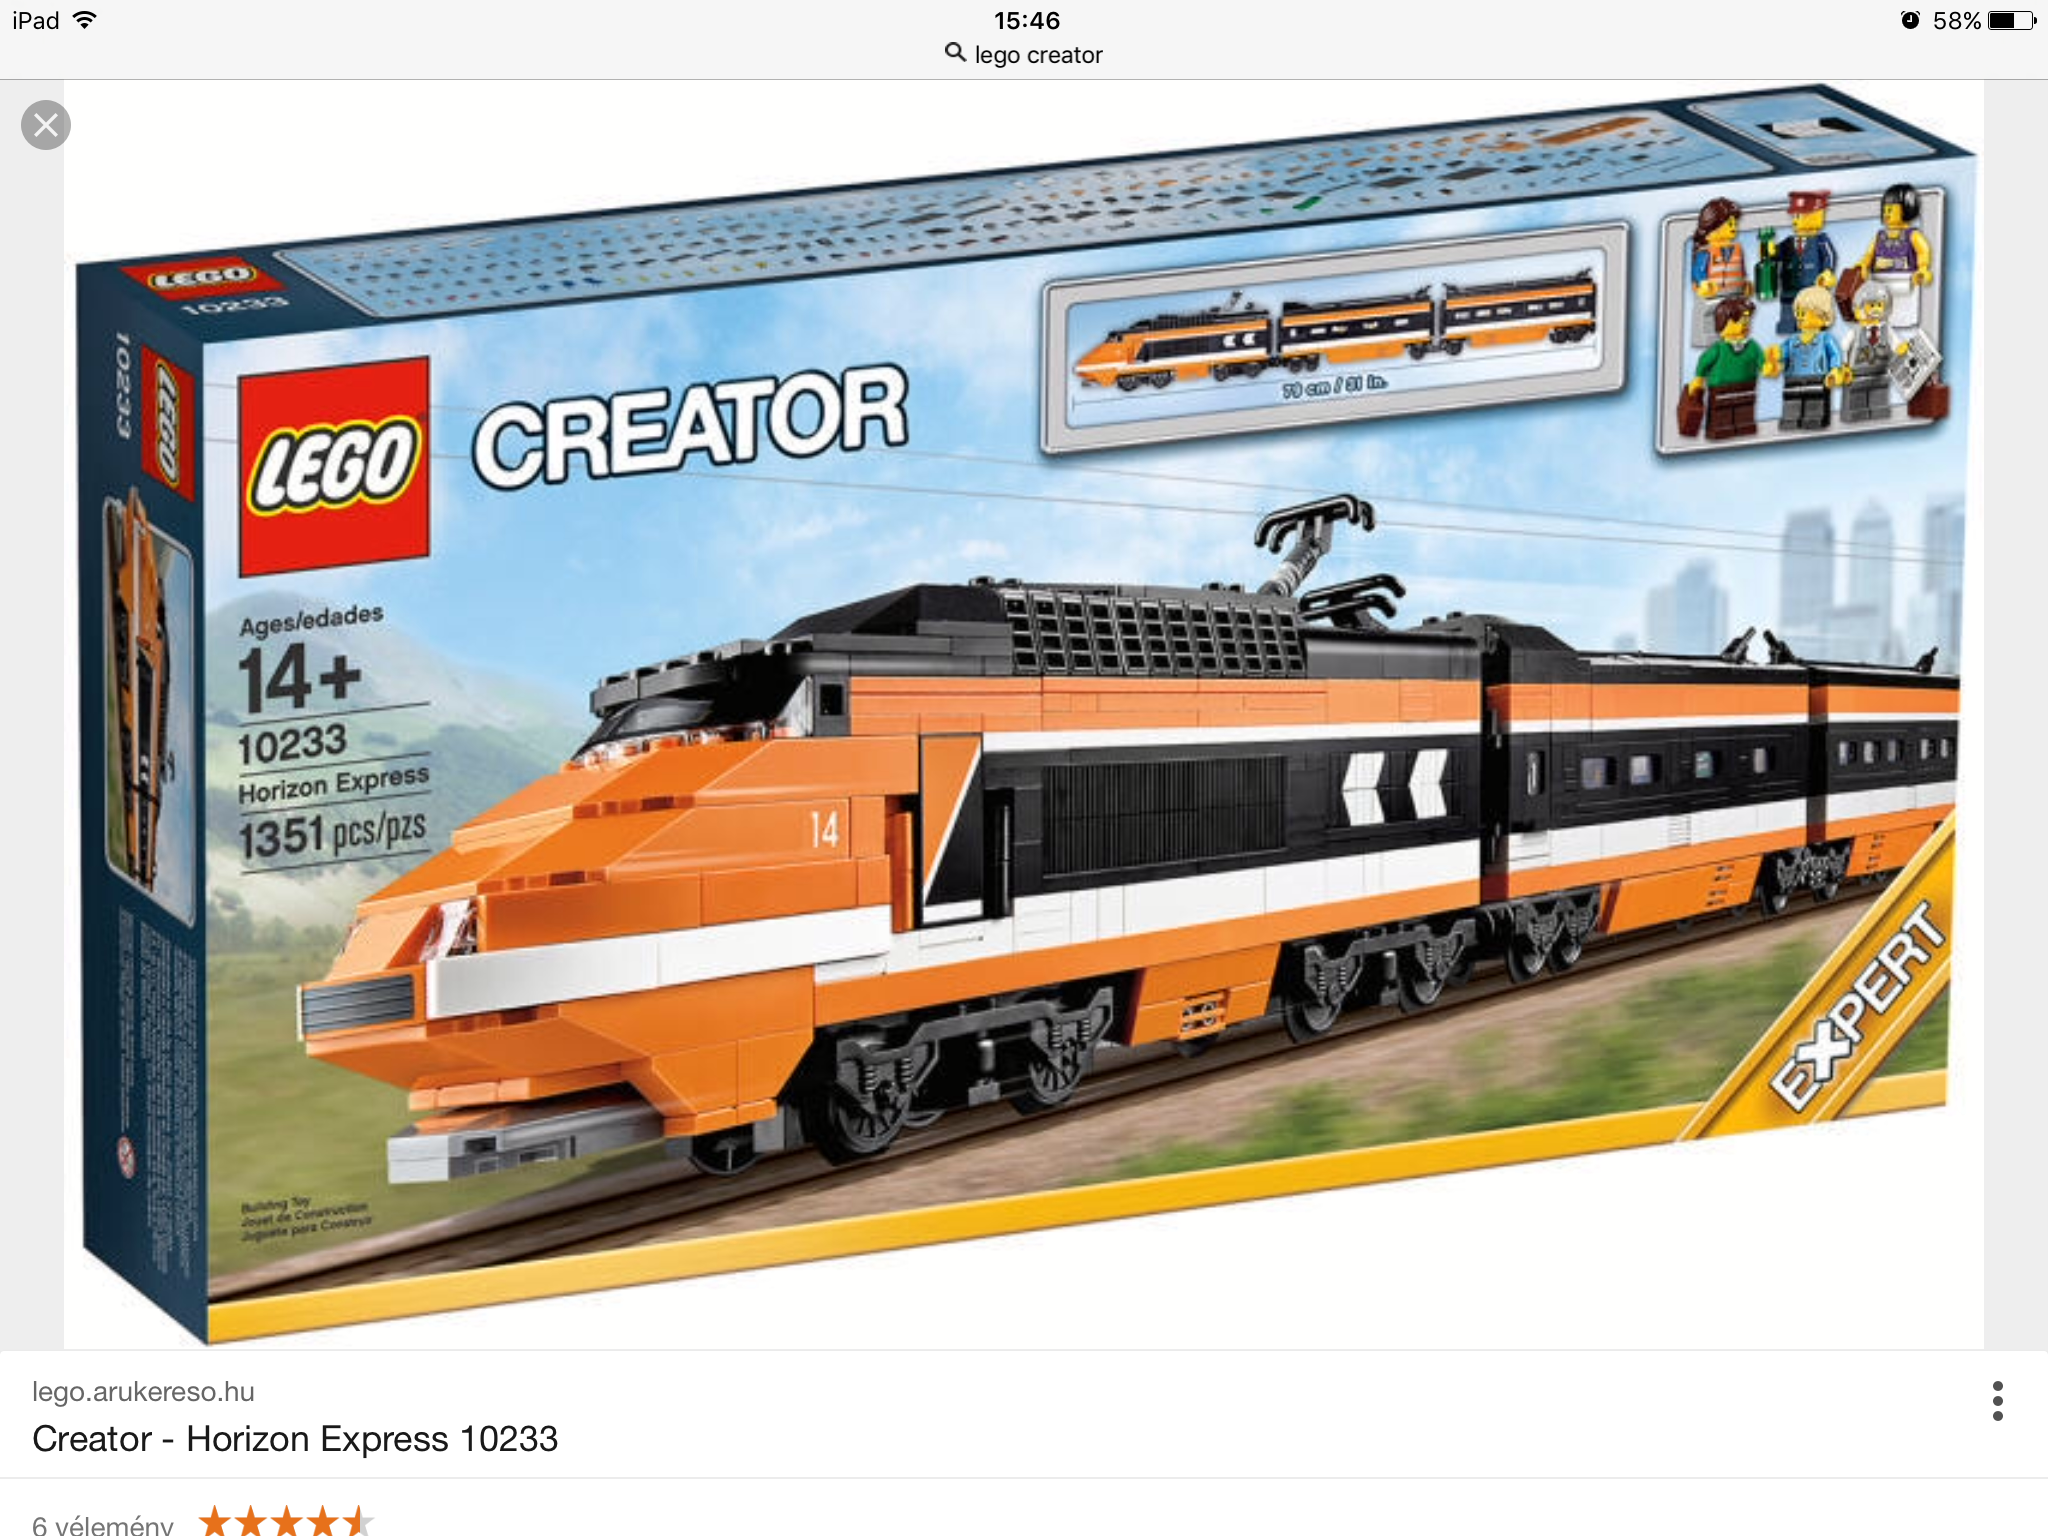 Pin By Tmea Darvas On Lego Pinterest Lego And Lego Instructions